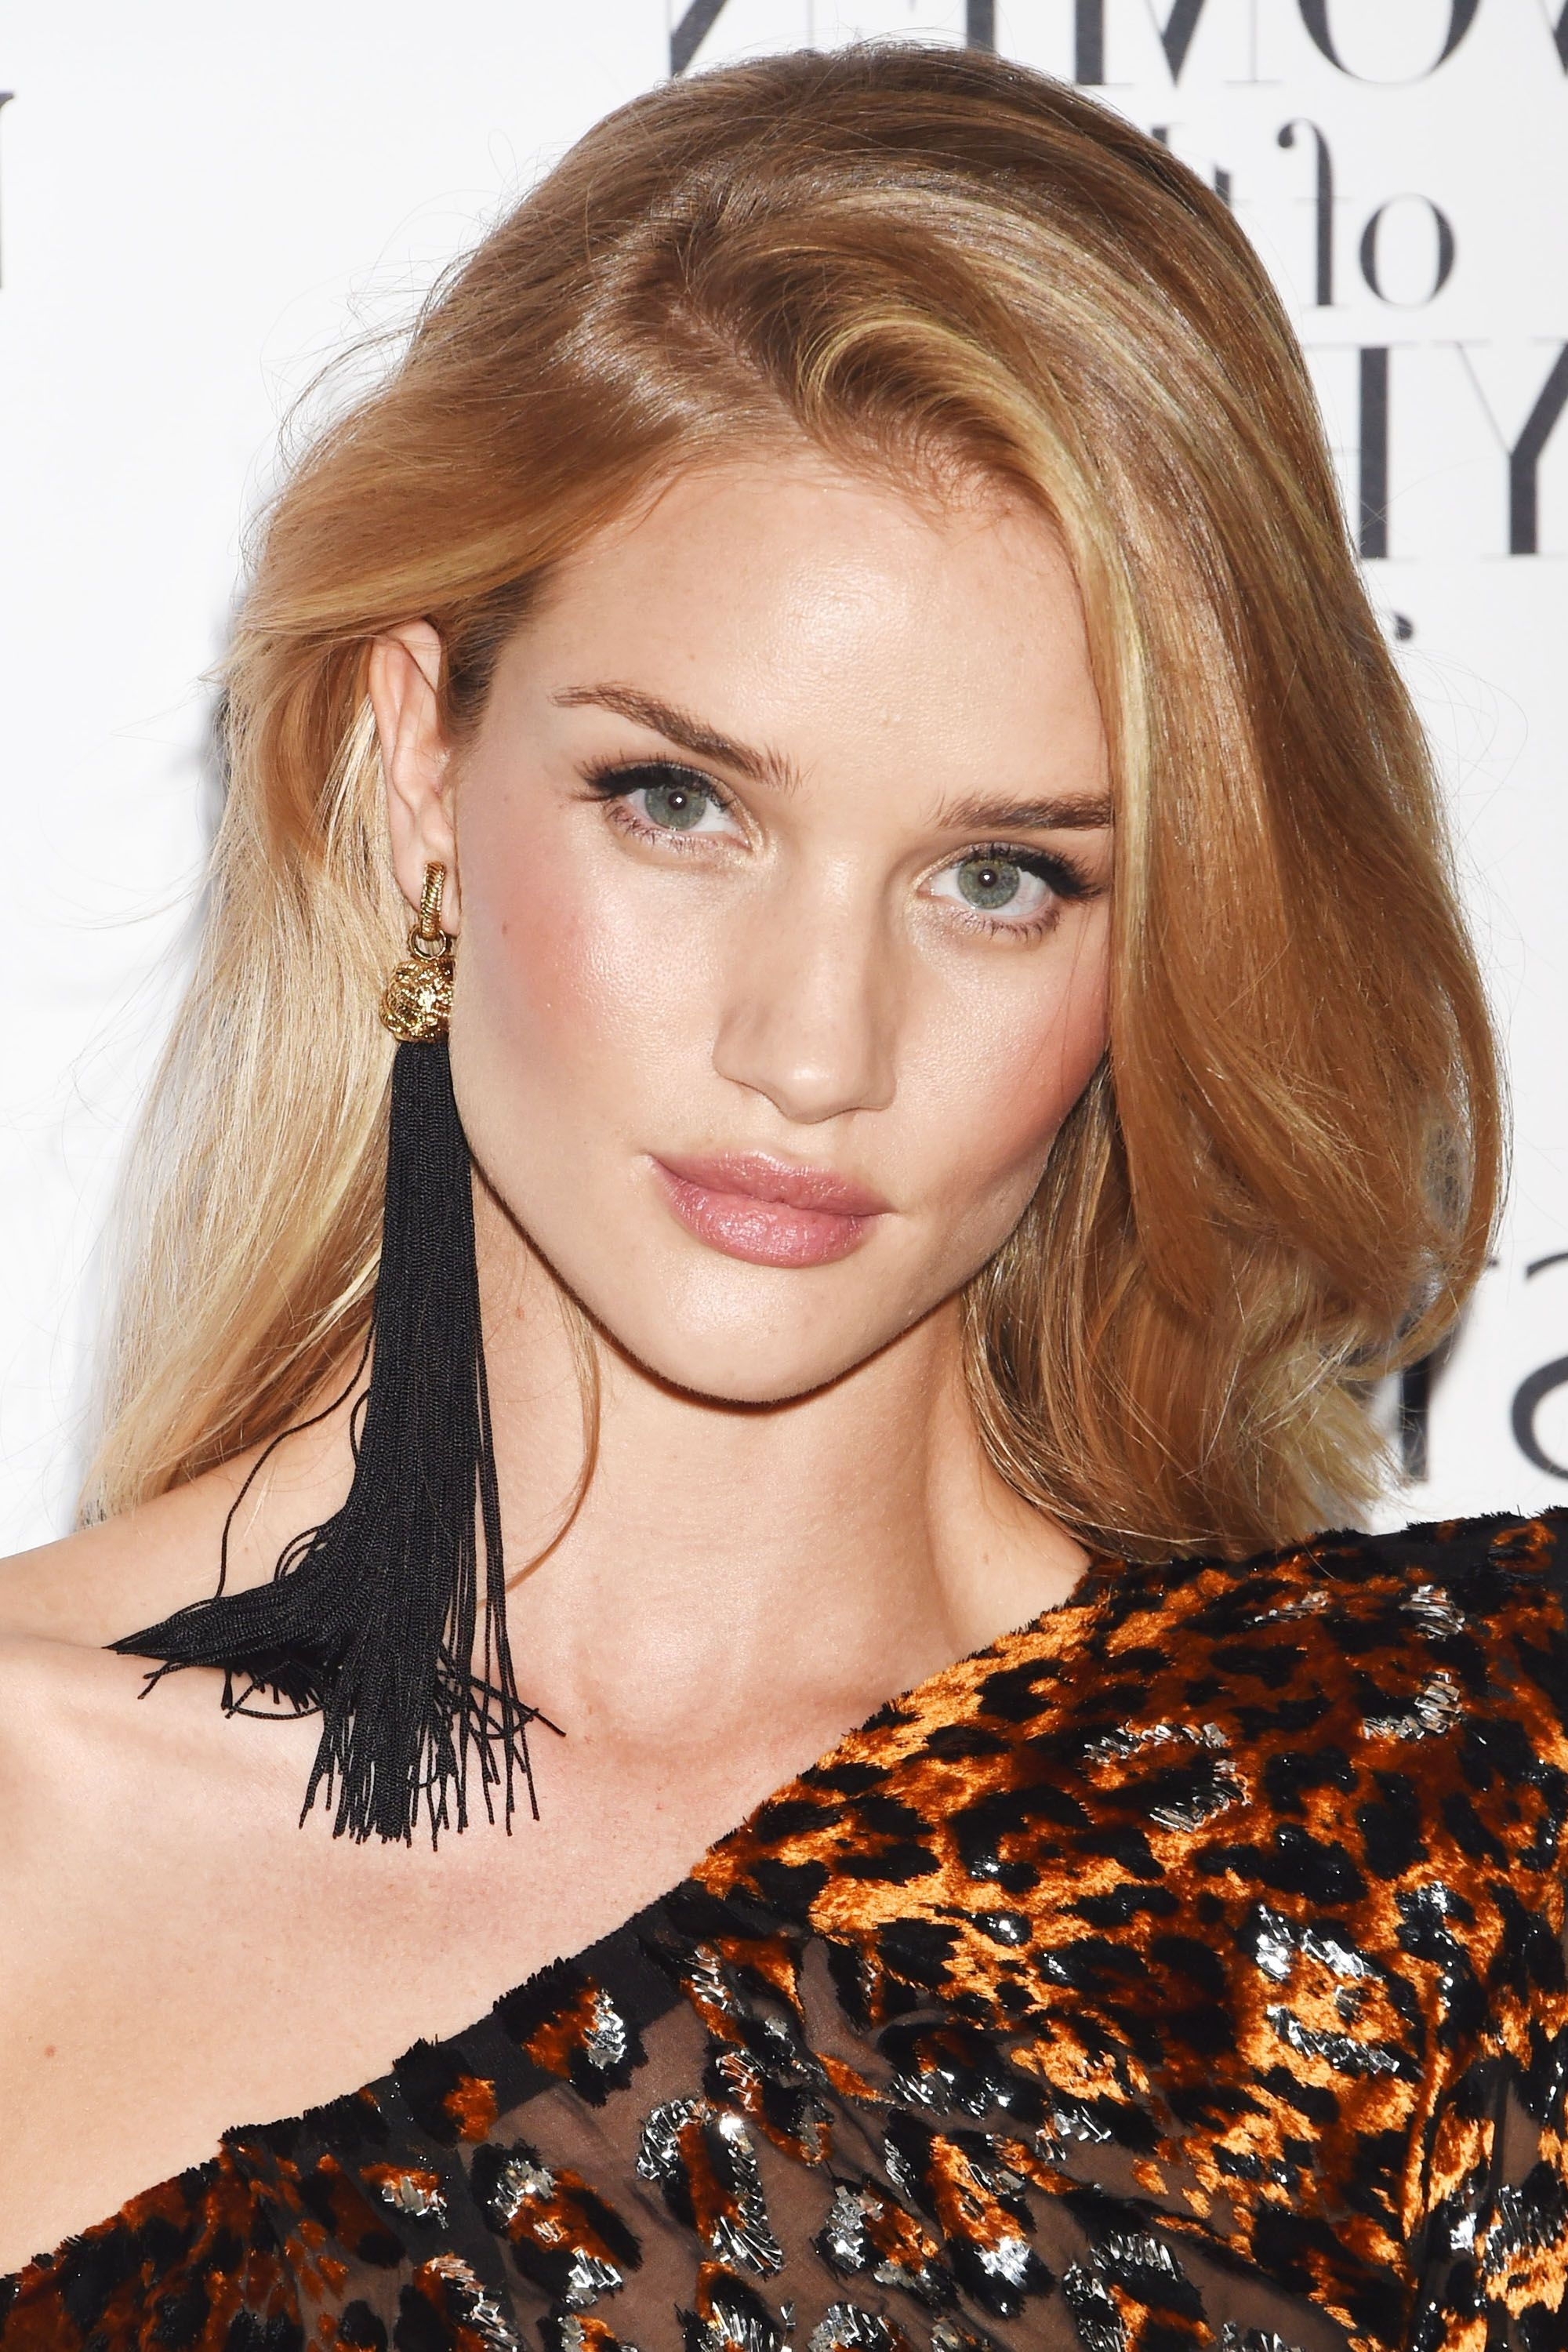 2017's Honey Blonde Hair Color Shades – Dirty Blonde And Honey Intended For Recent Light Ash Locks Blonde Hairstyles (View 3 of 20)